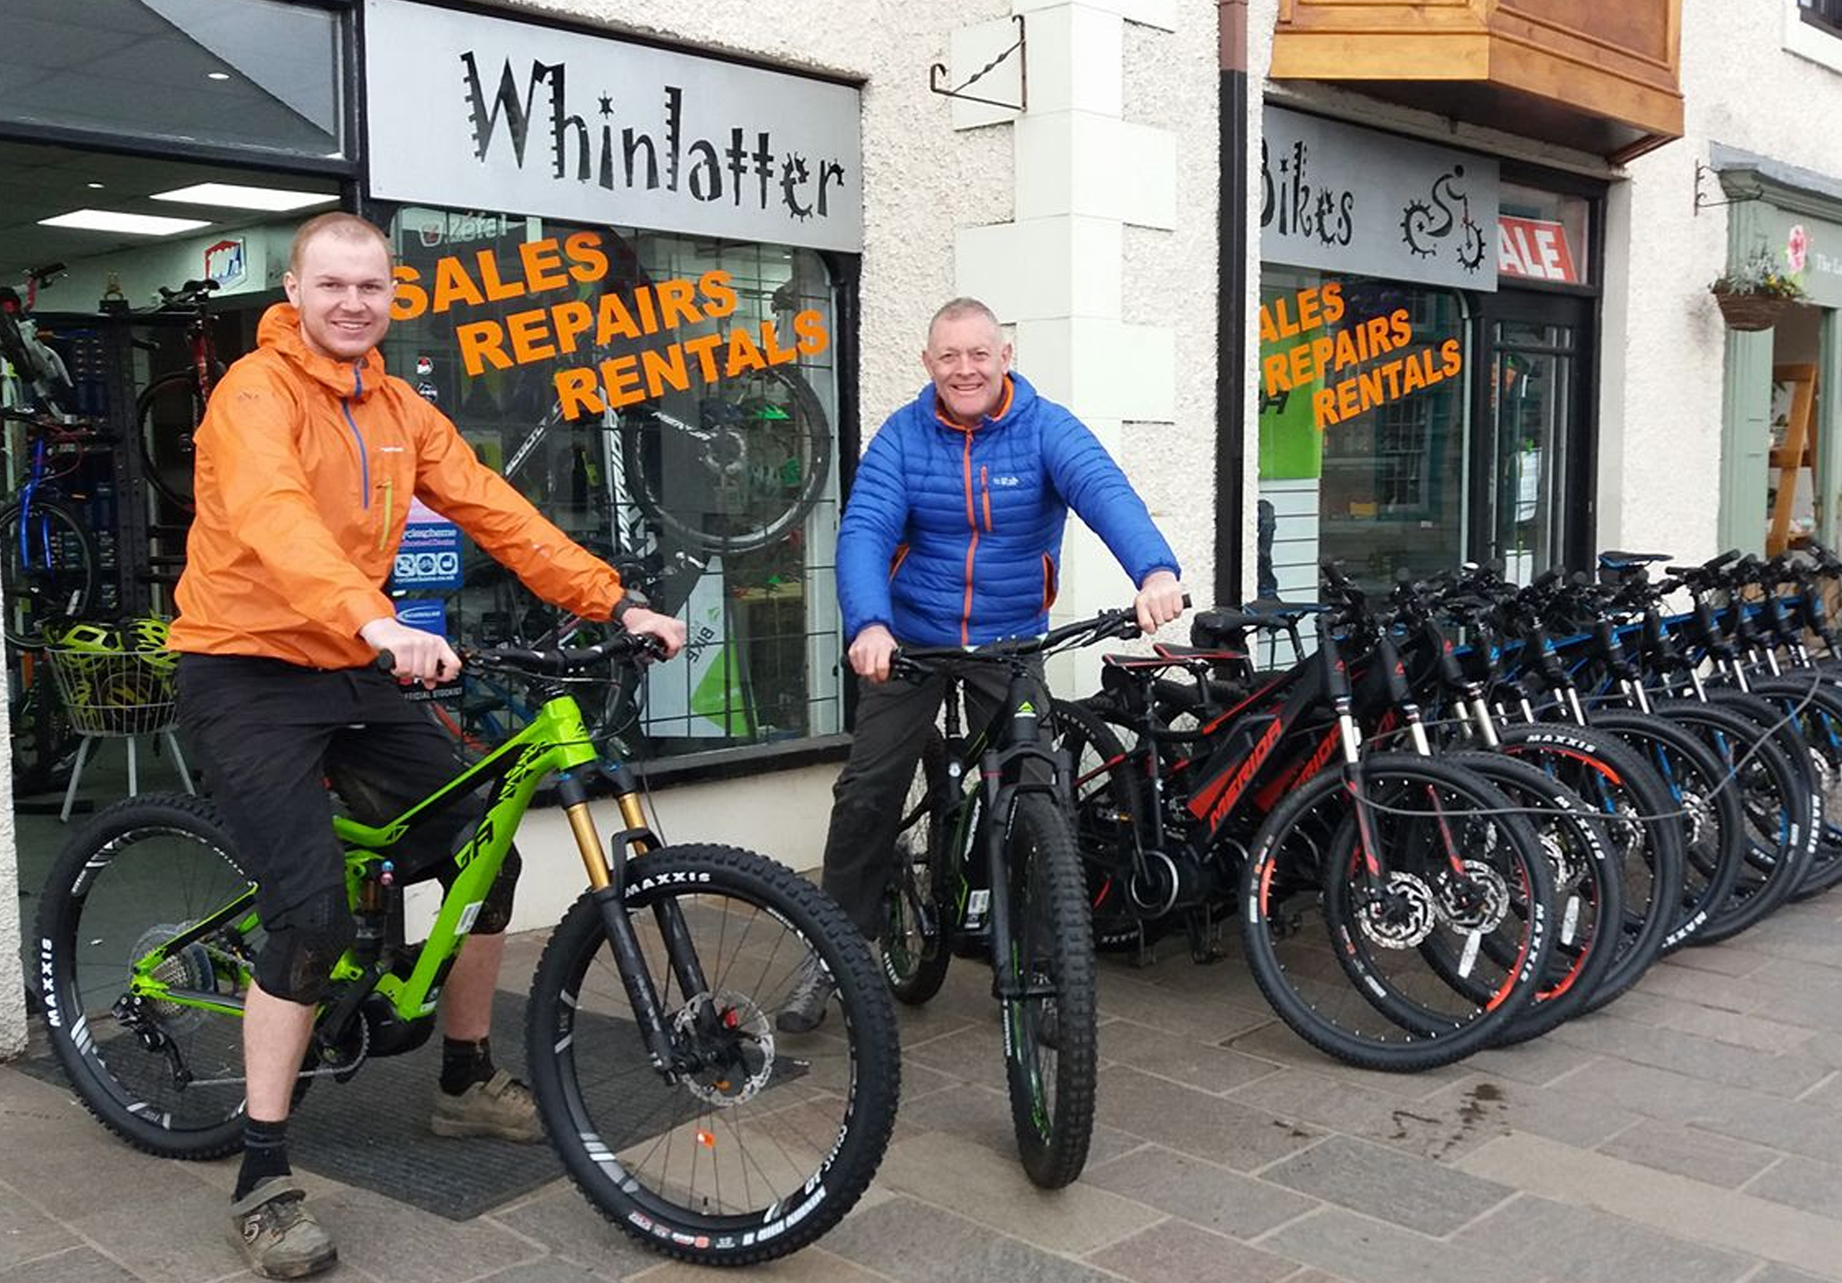 Whinlatter Bikes   We have a fine selection of bikes to suit all ages and abilities. The shop also features a full line of technical and street clothing. We carry accessories from all the major suppliers. From fashion to function we truly are a one-stop shop. Our staff have extensive knowledge and many years of international experience. We also ride the same local roads and trails you ride. The shop has a full service and repair facility with in-store Cytec certified mechanics. We do complete bike builds and custom wheel builds. Whinlatter Bikes are leading the way with tubeless tyre technology.  82 Main Street, Keswick, CA12 5DX  017687 73940